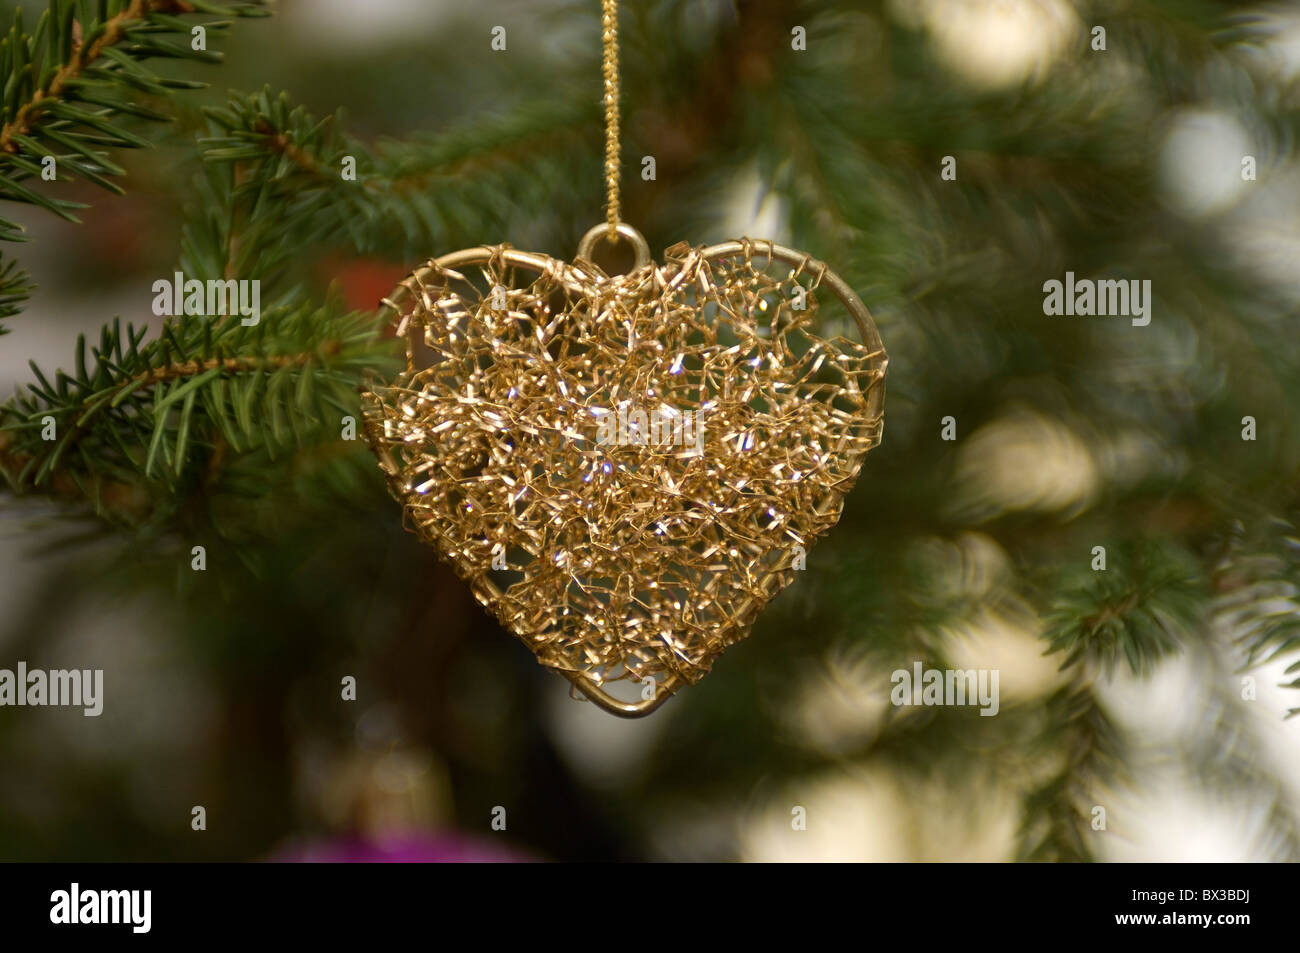 decoration in shape of heart hanging on christmas tree - Stock Image